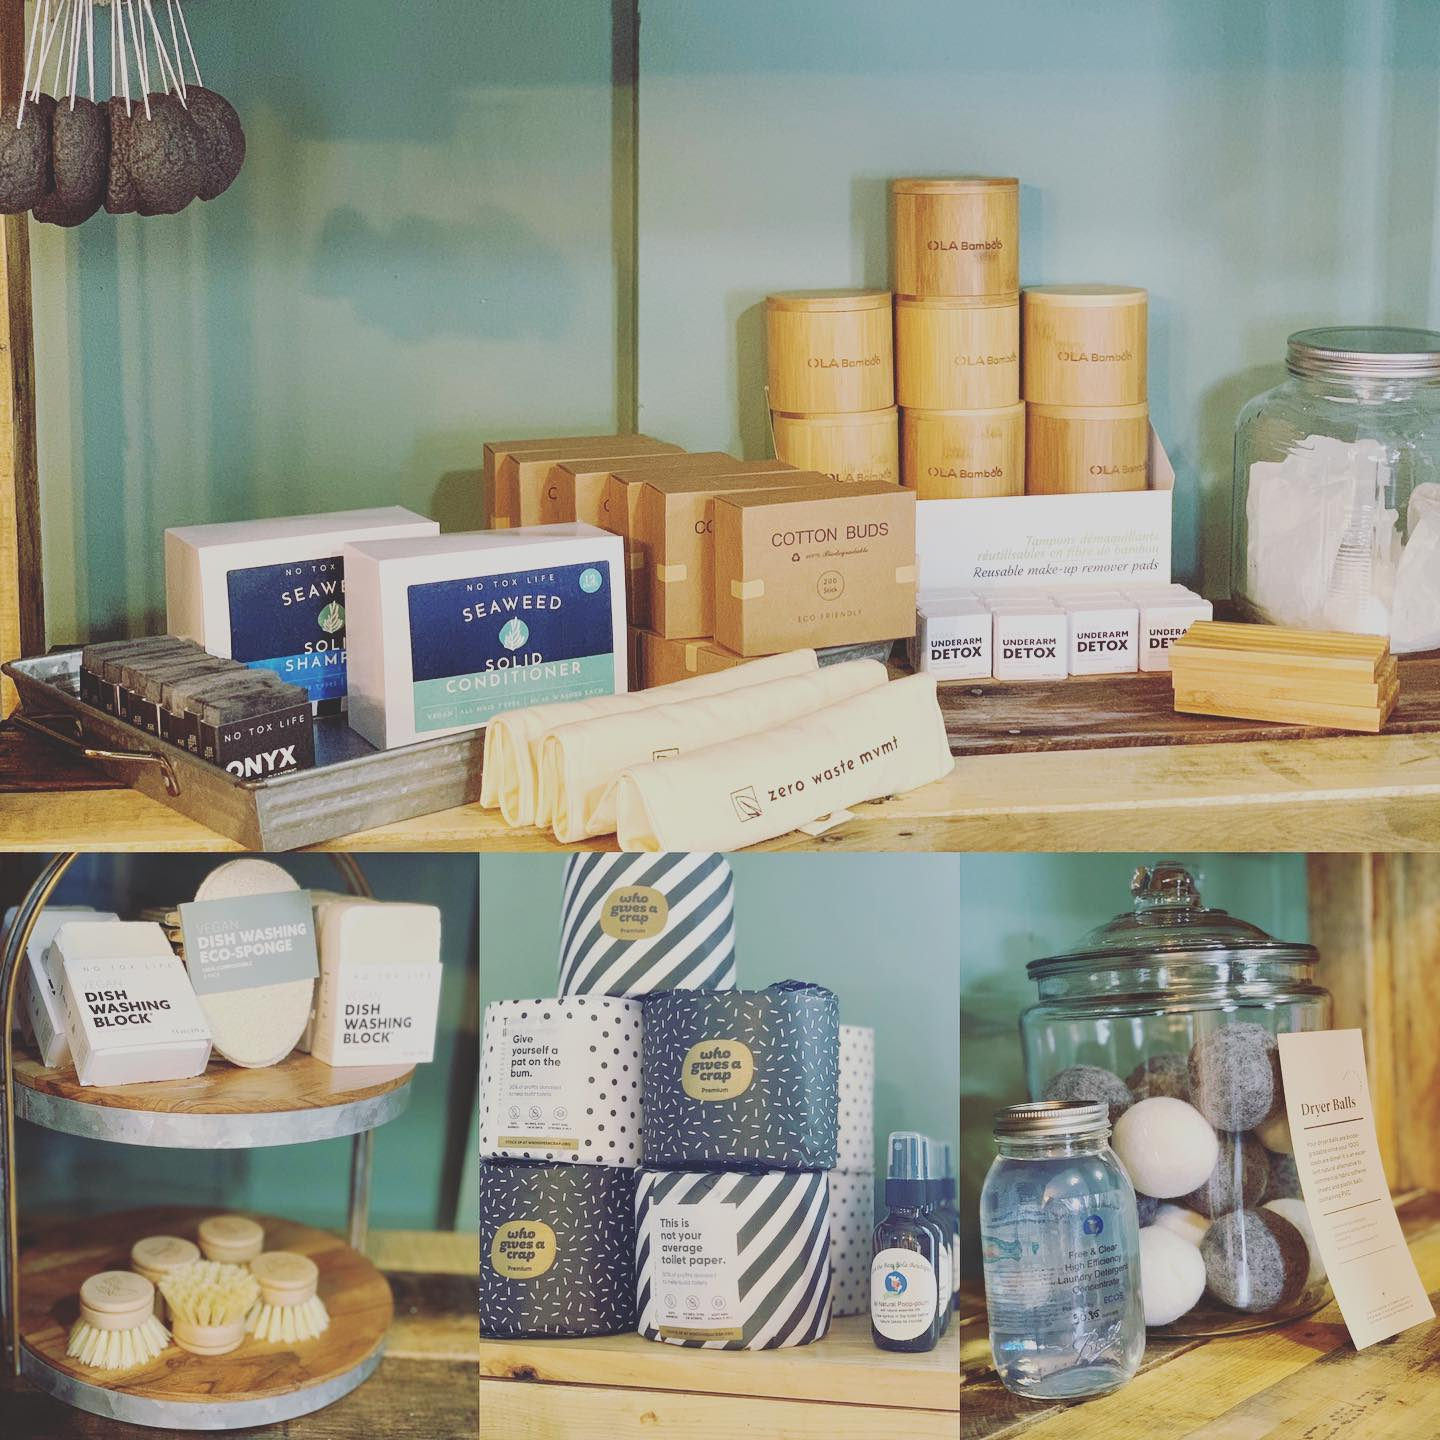 a variety of zero waste home products on shelves